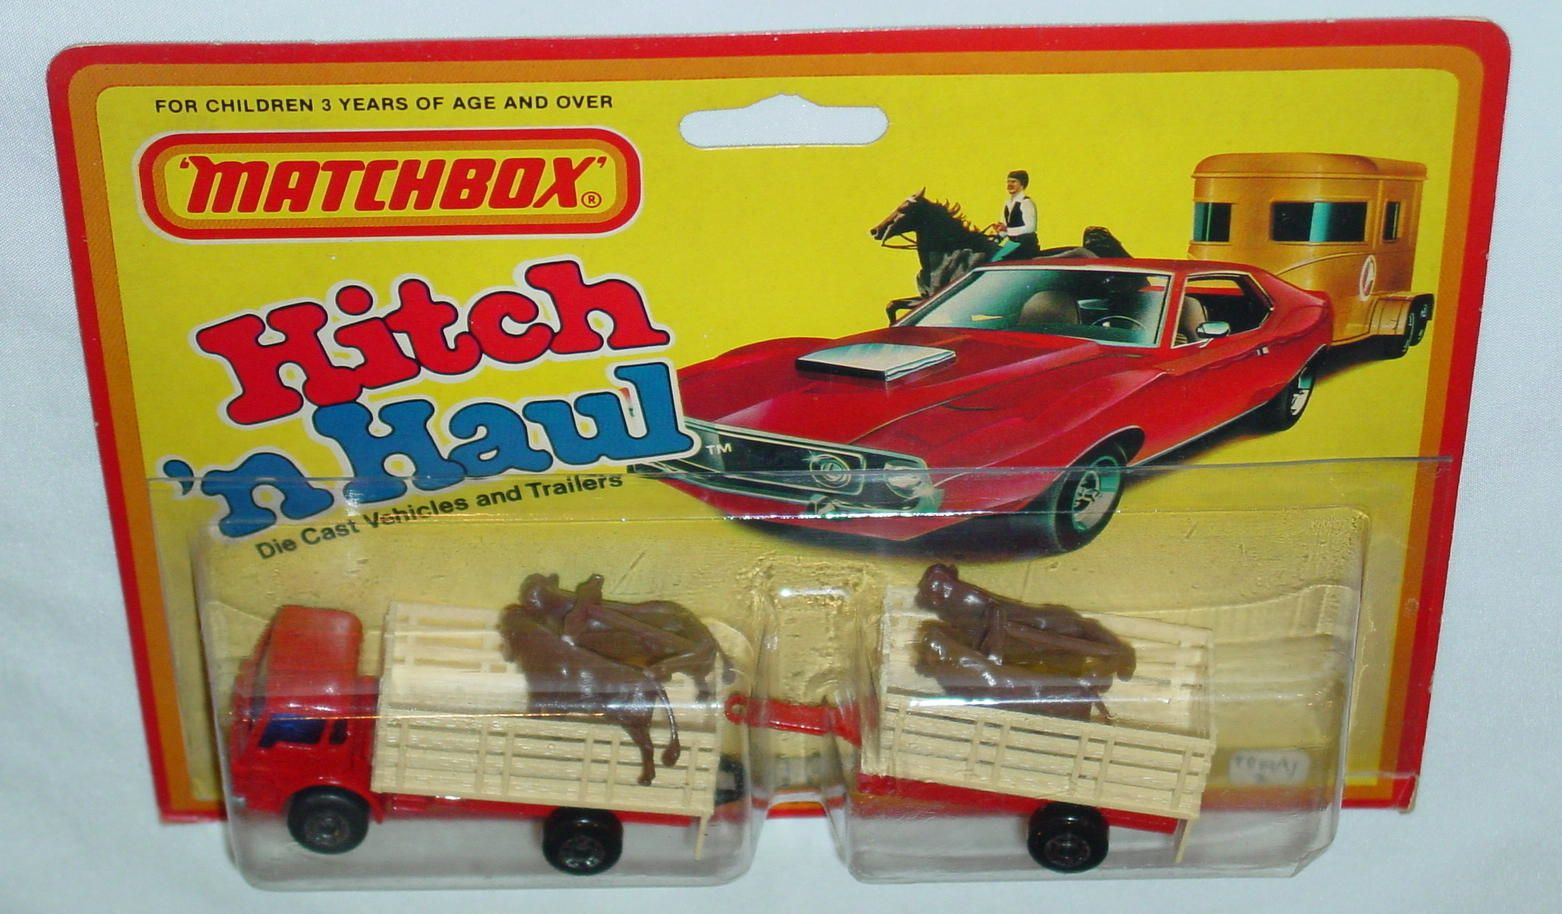 Twin Pack 19 A 2 Red 71c11 Cattle Beige 792a3 Trailer C9 Hitch Haul Matchbox Toy Car Blister Pack